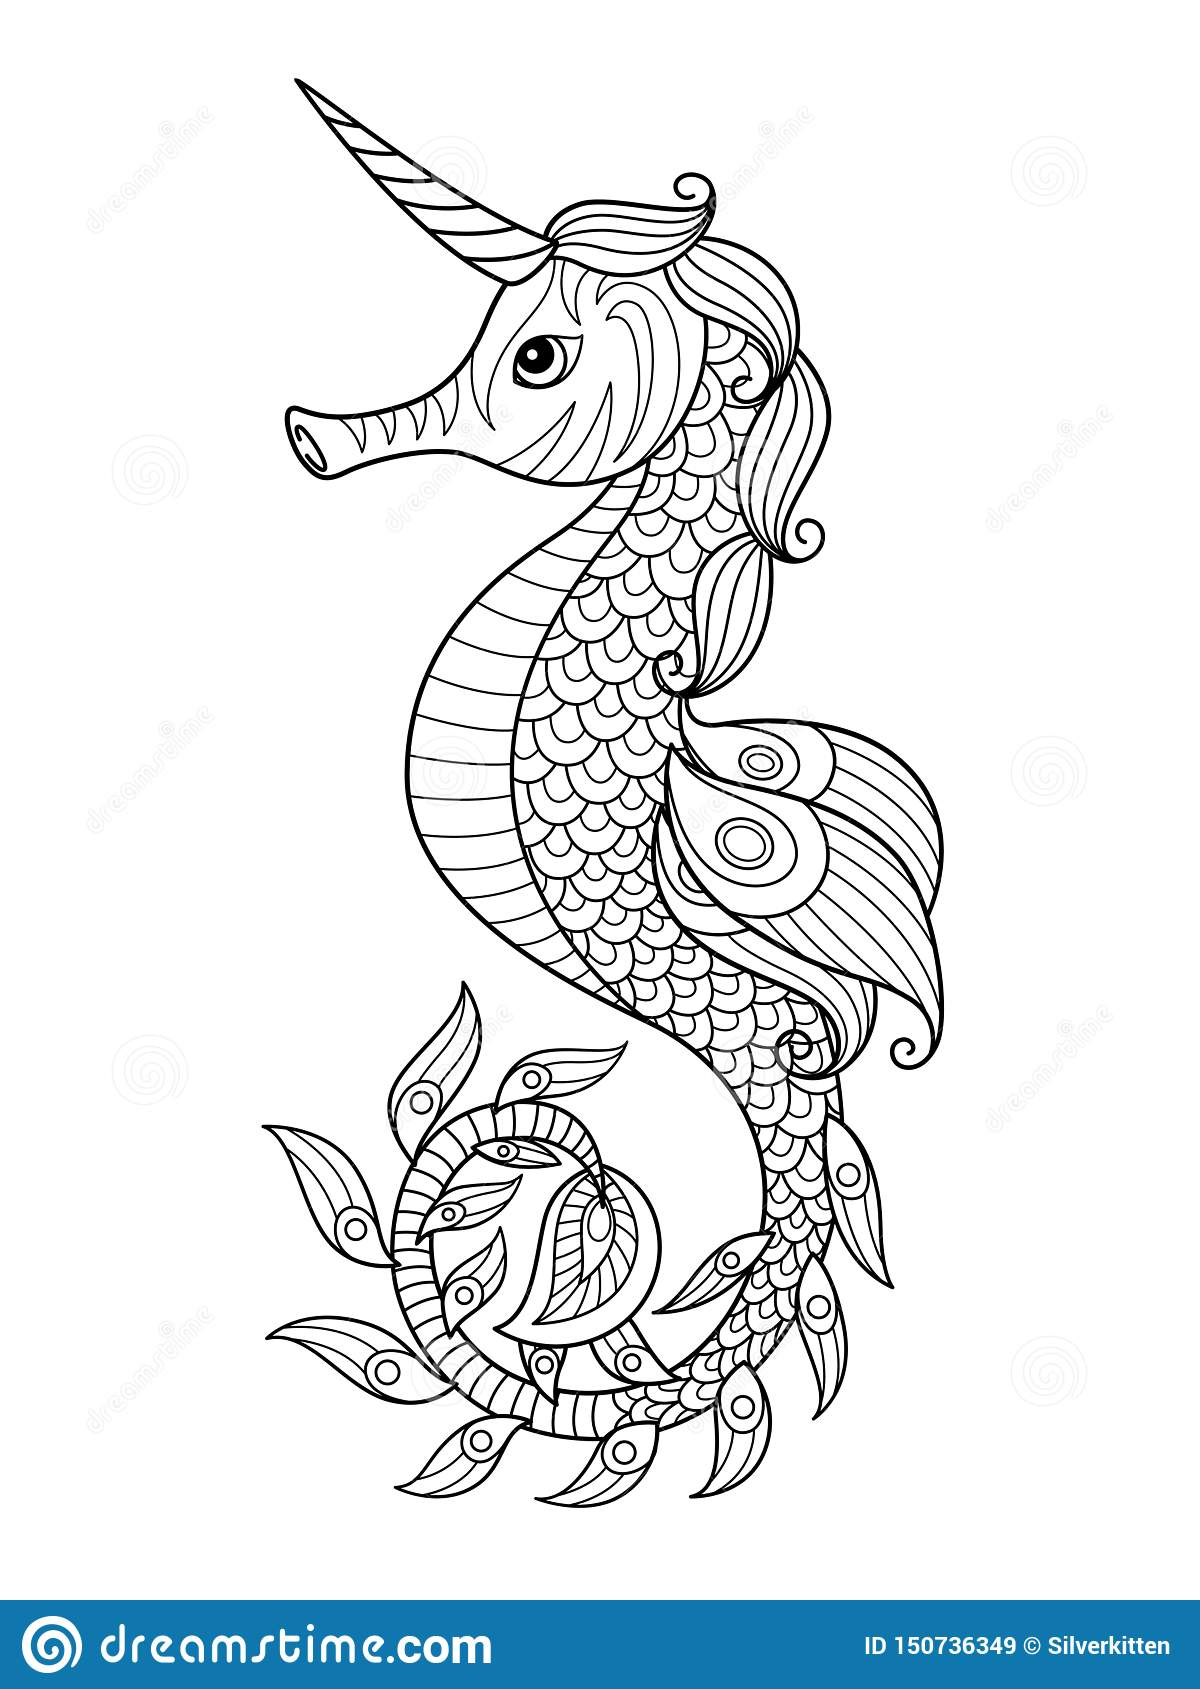 Sea Doodle Coloring Book Page Unicorn Seahorse Stock ...